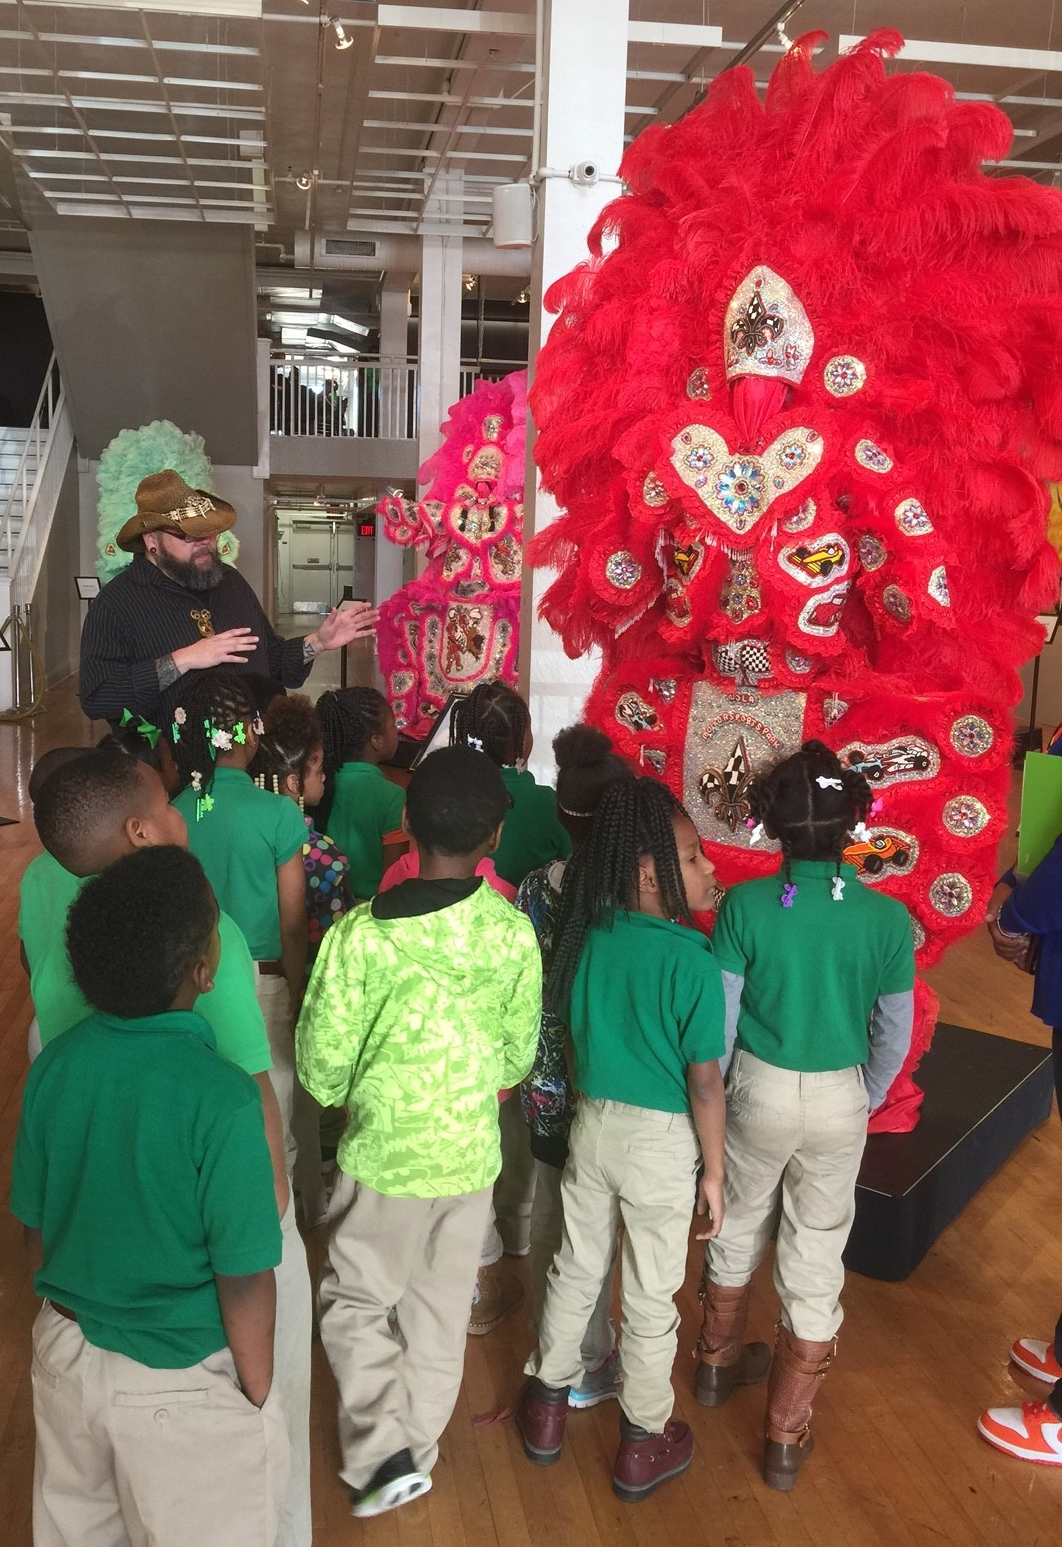 Larry Sanchez, Resident Artist and 2017 S. Scott Griffin Award Winner, explains the artistic and cultural traditions of the Creole Wild West Mardi Gras Indians to local students visiting artspace.